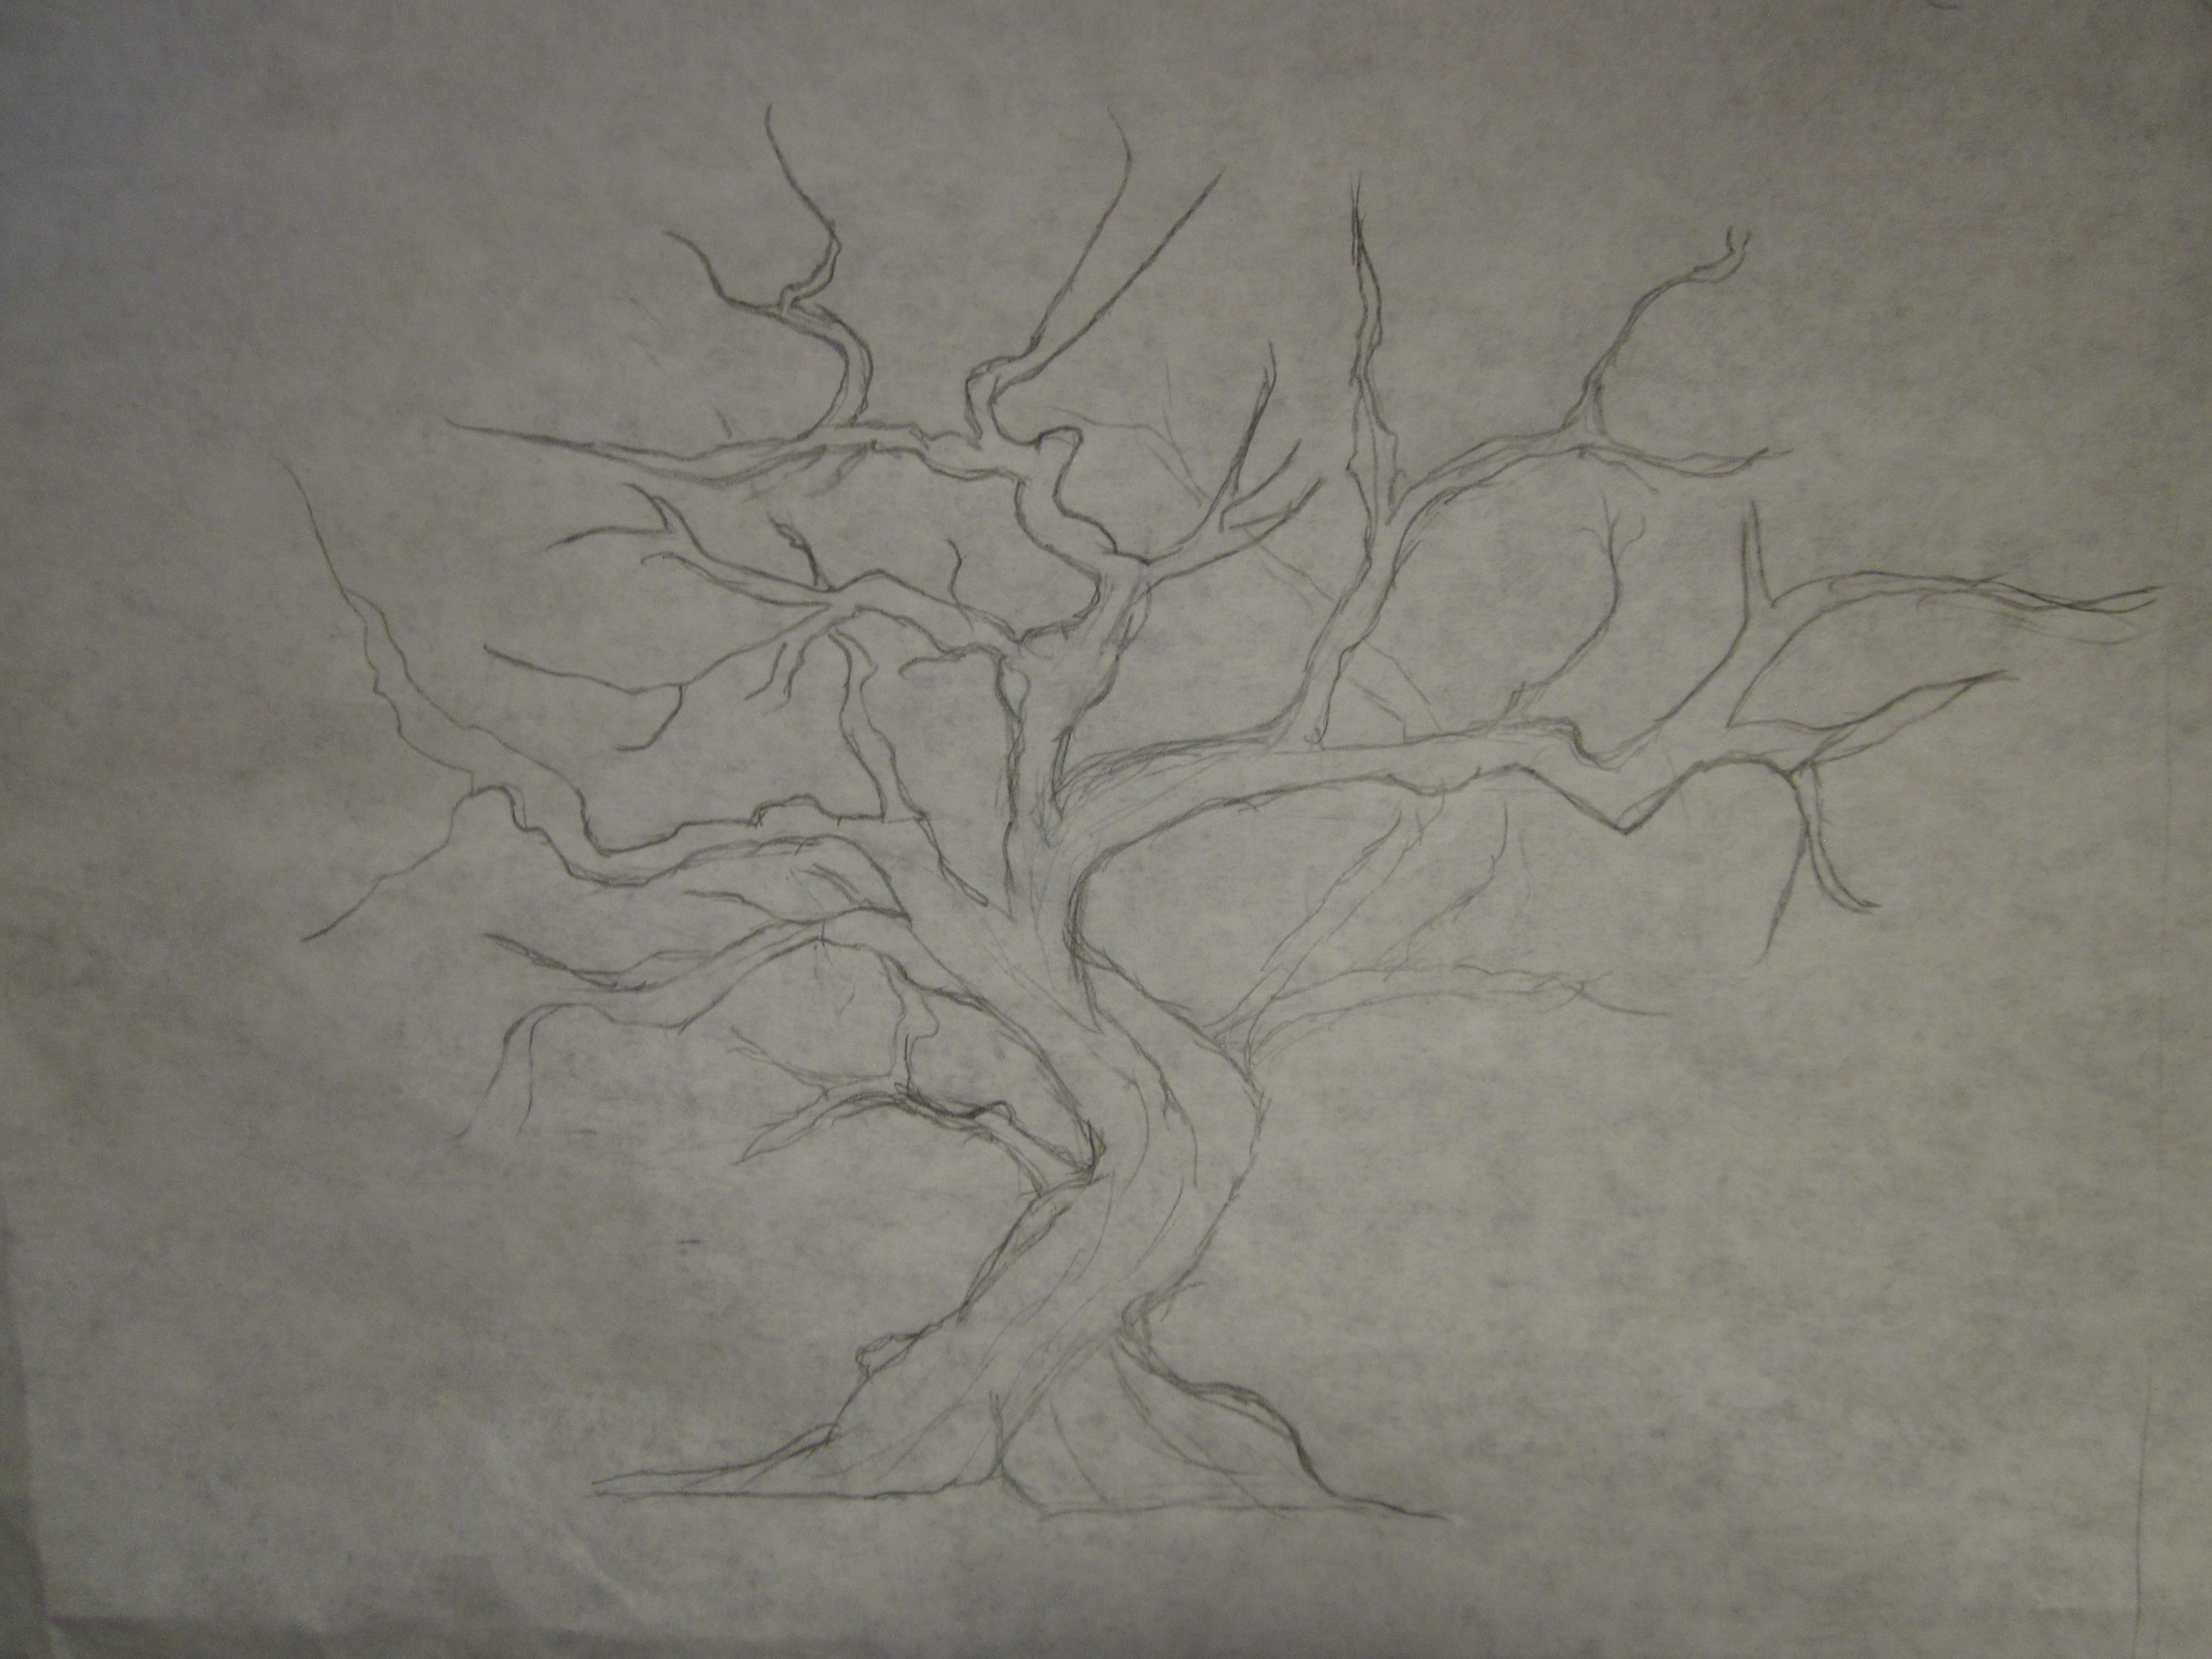 Drawn sakura blossom flowering tree Drawing rough the information Pencil